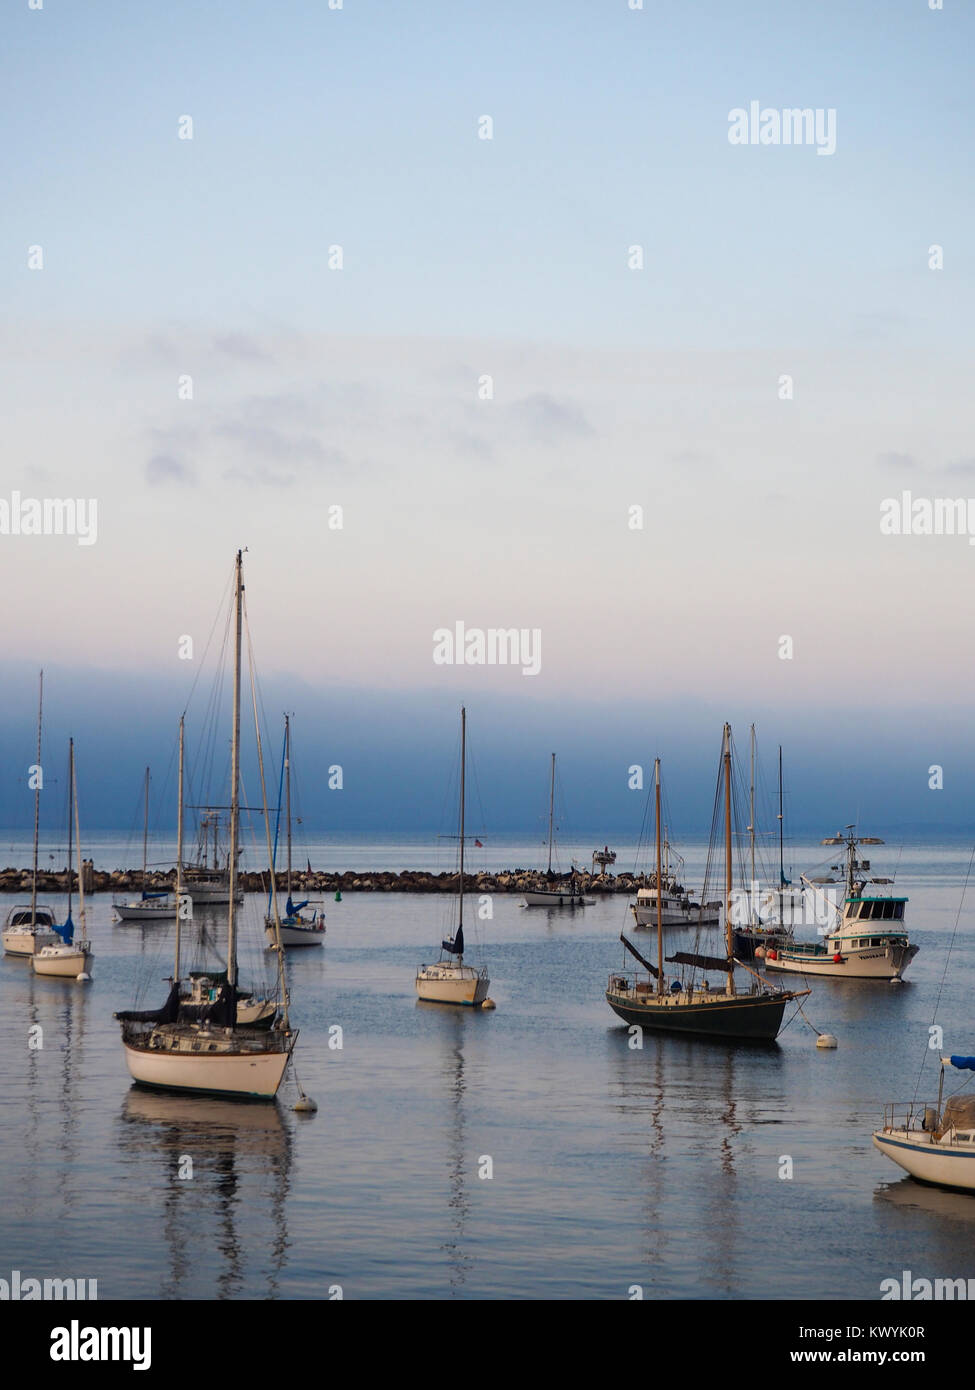 Monterey, CA - 11 August 2016: Yachts ares anchored at the harbor of the Californian port city of Monterey. - Stock Image